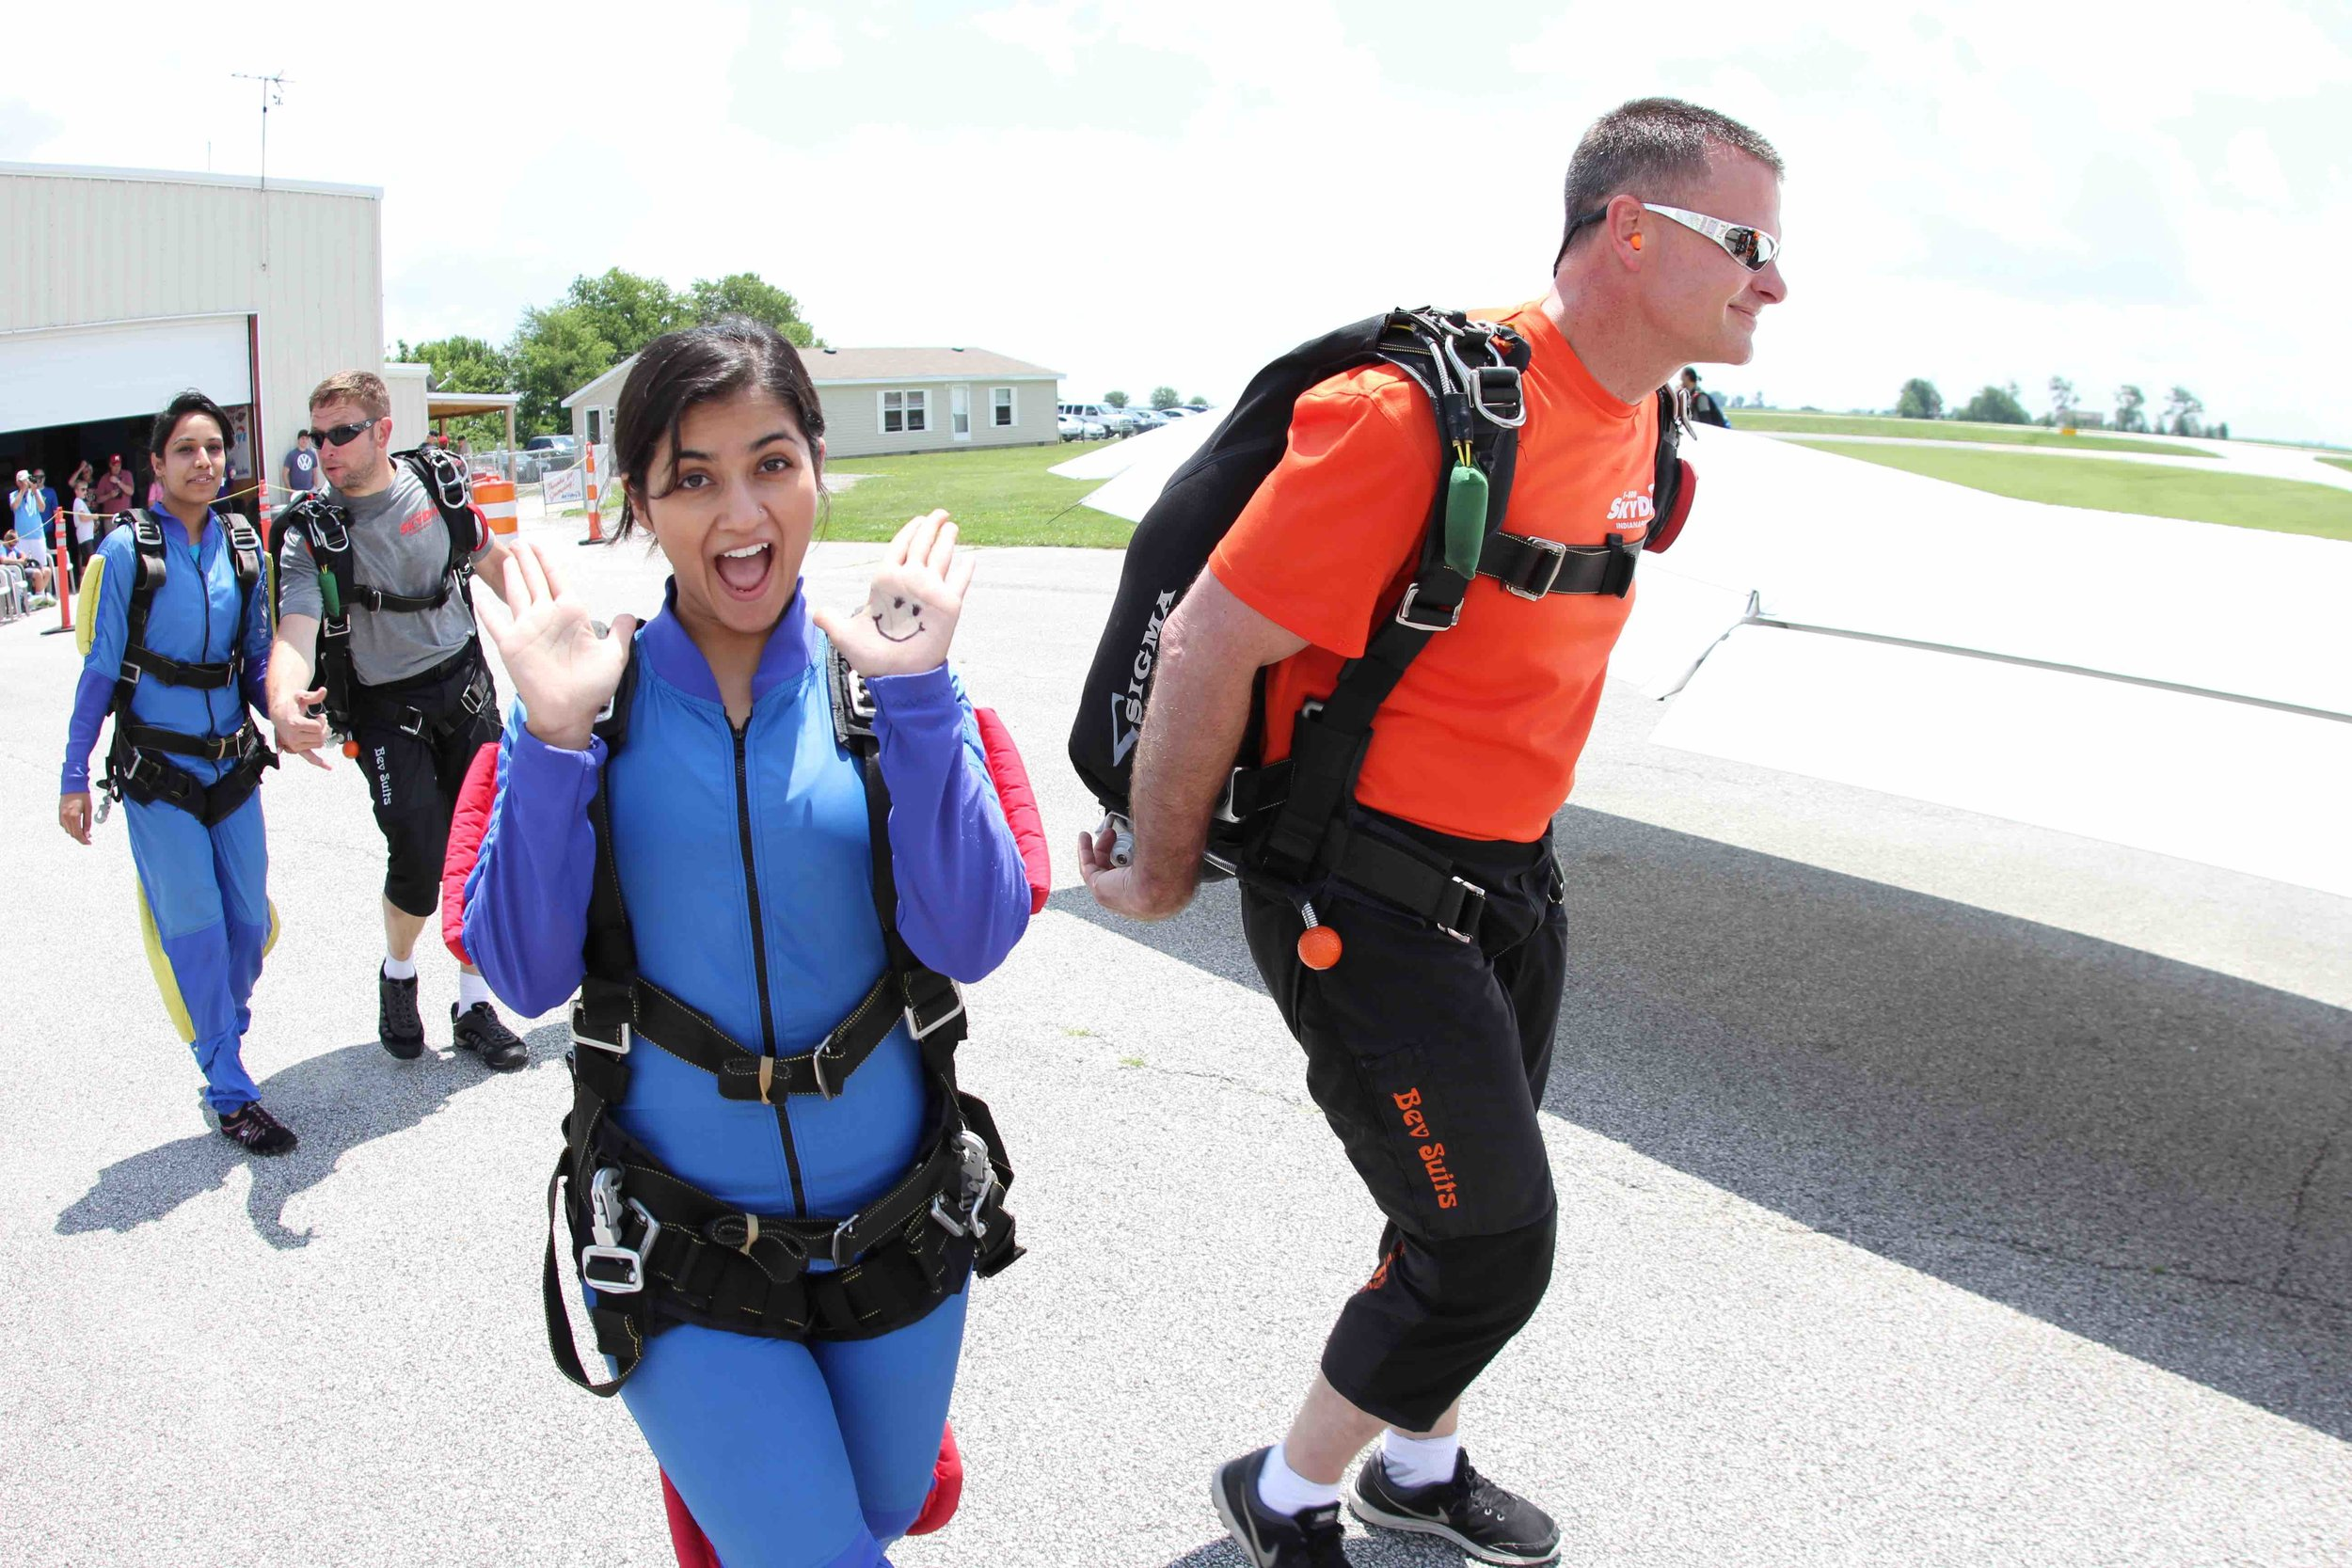 How do you feel about skydiving?